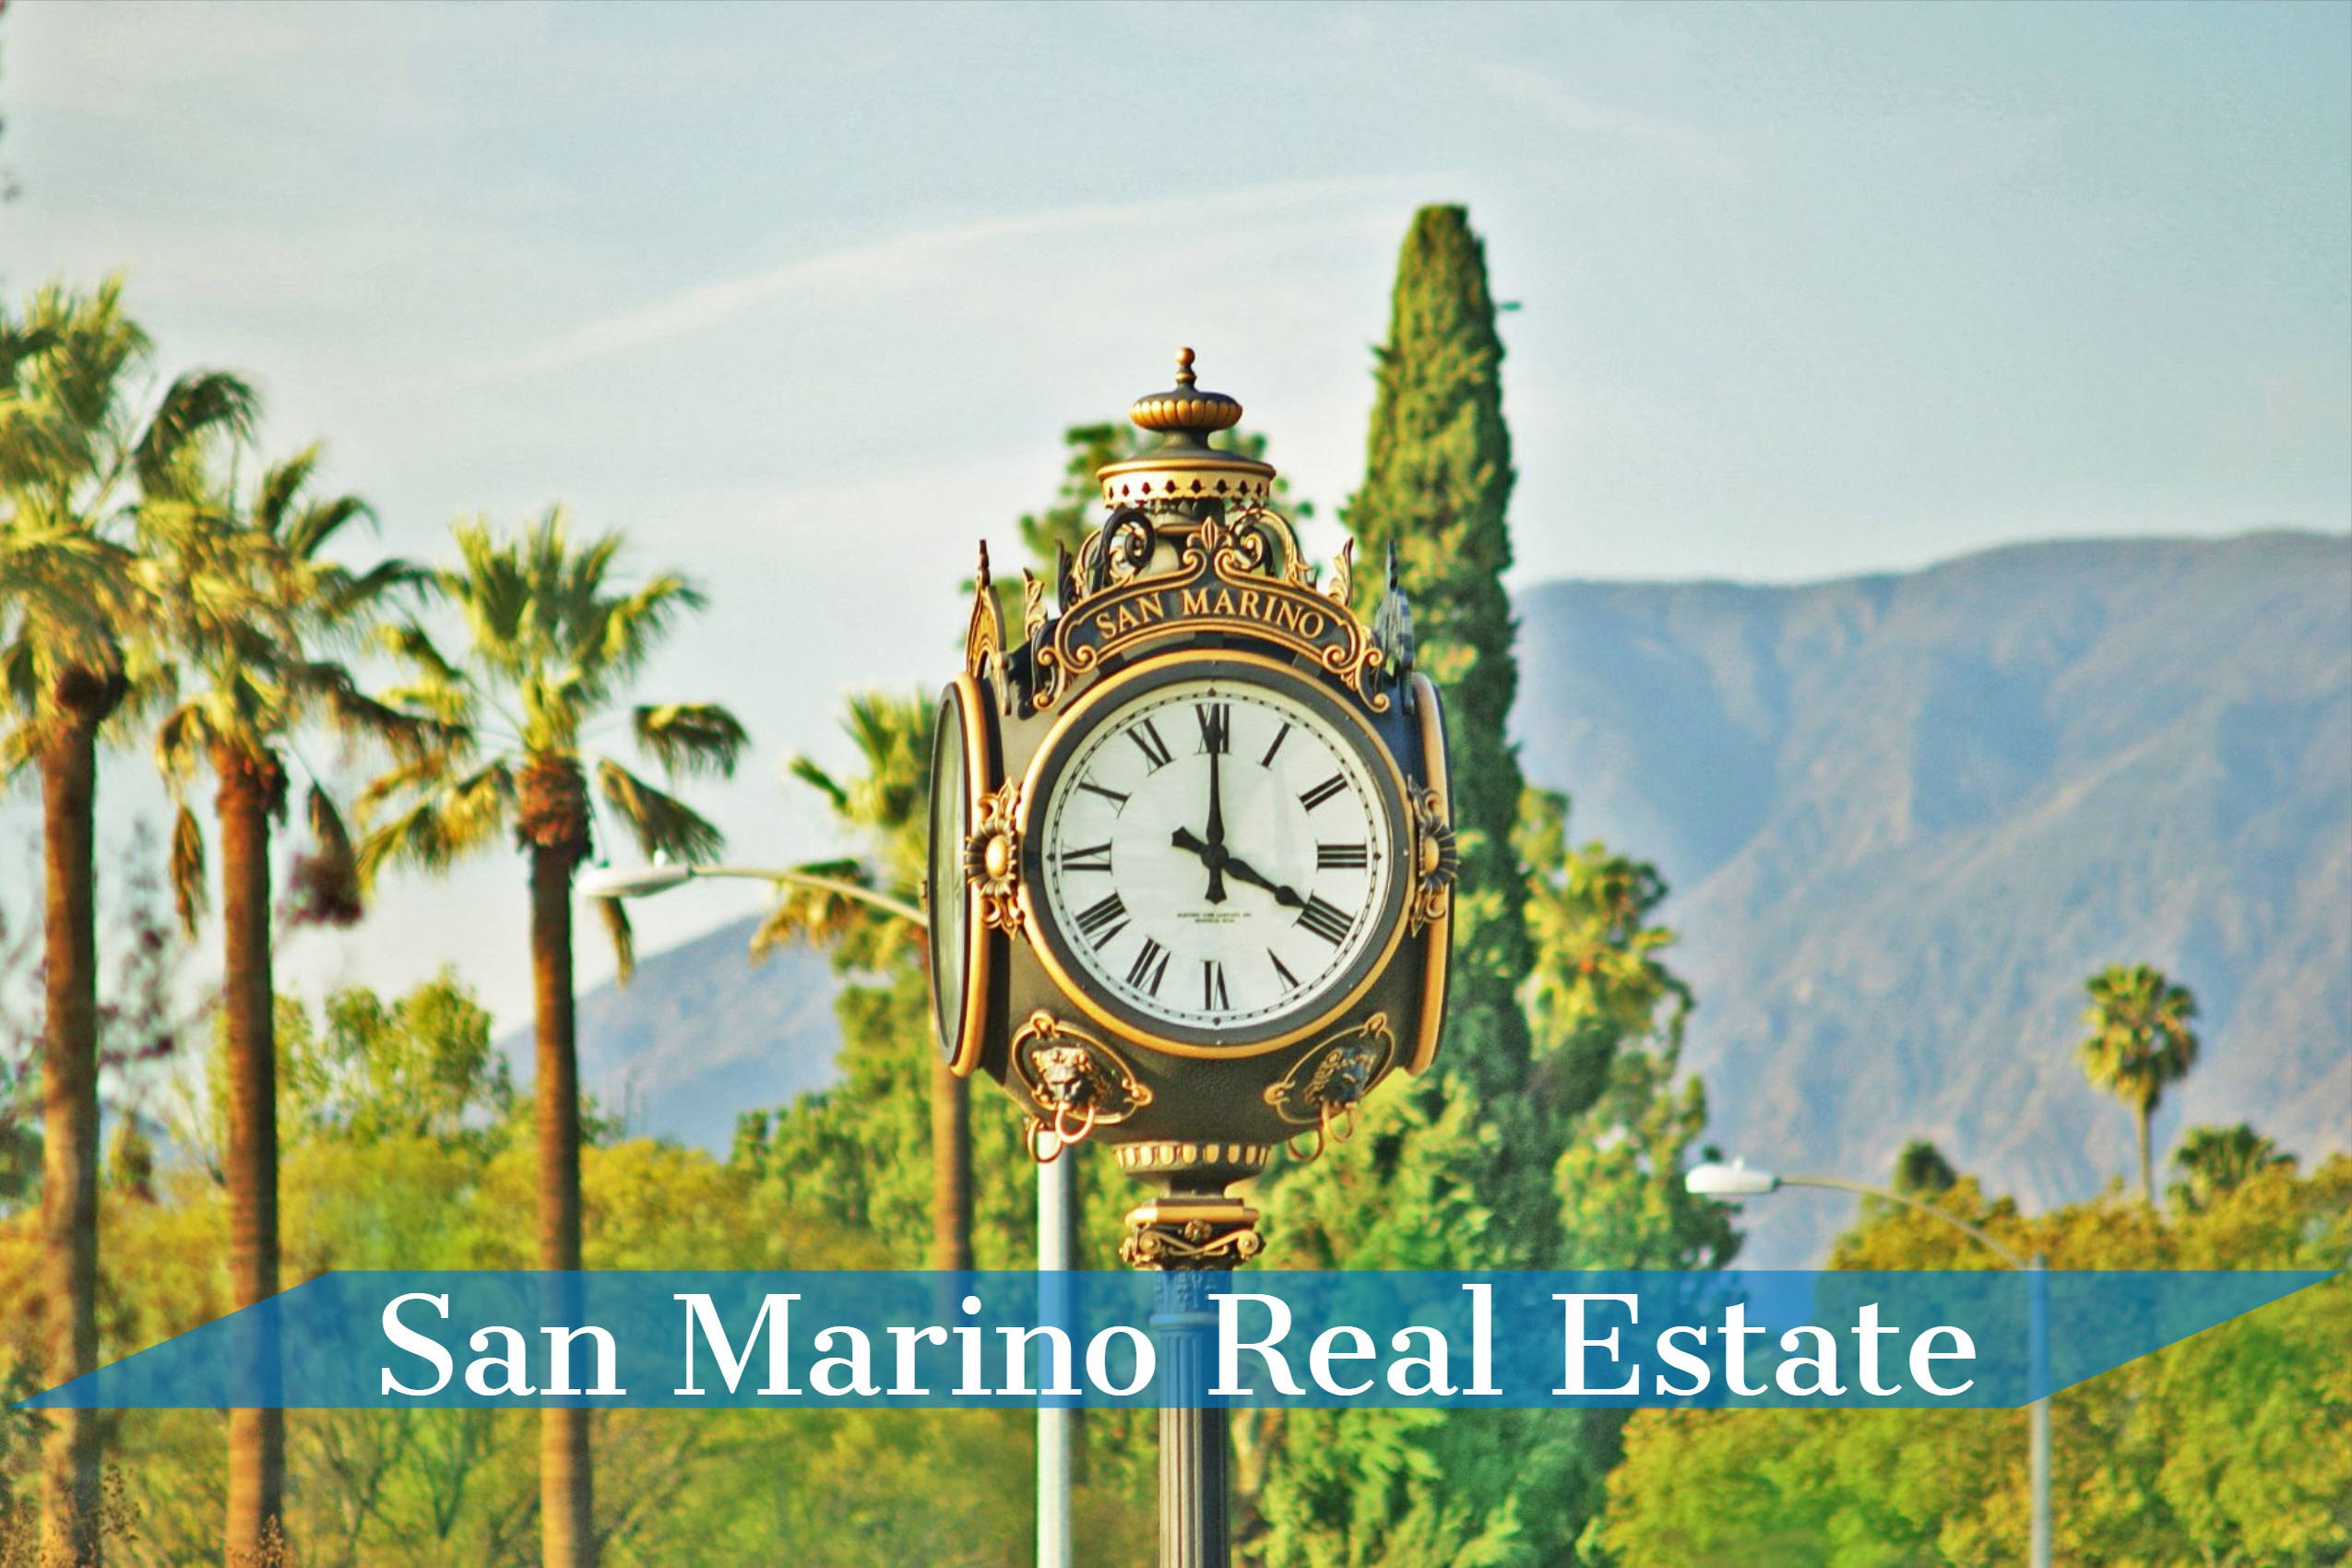 TalkToPaul San Marino Real EstateSan Marino Real Estate Agent best real estate agent in san marino best realtor in san marino san marino real estate agent san marino realtor san marino homes for sale san marino real estate market